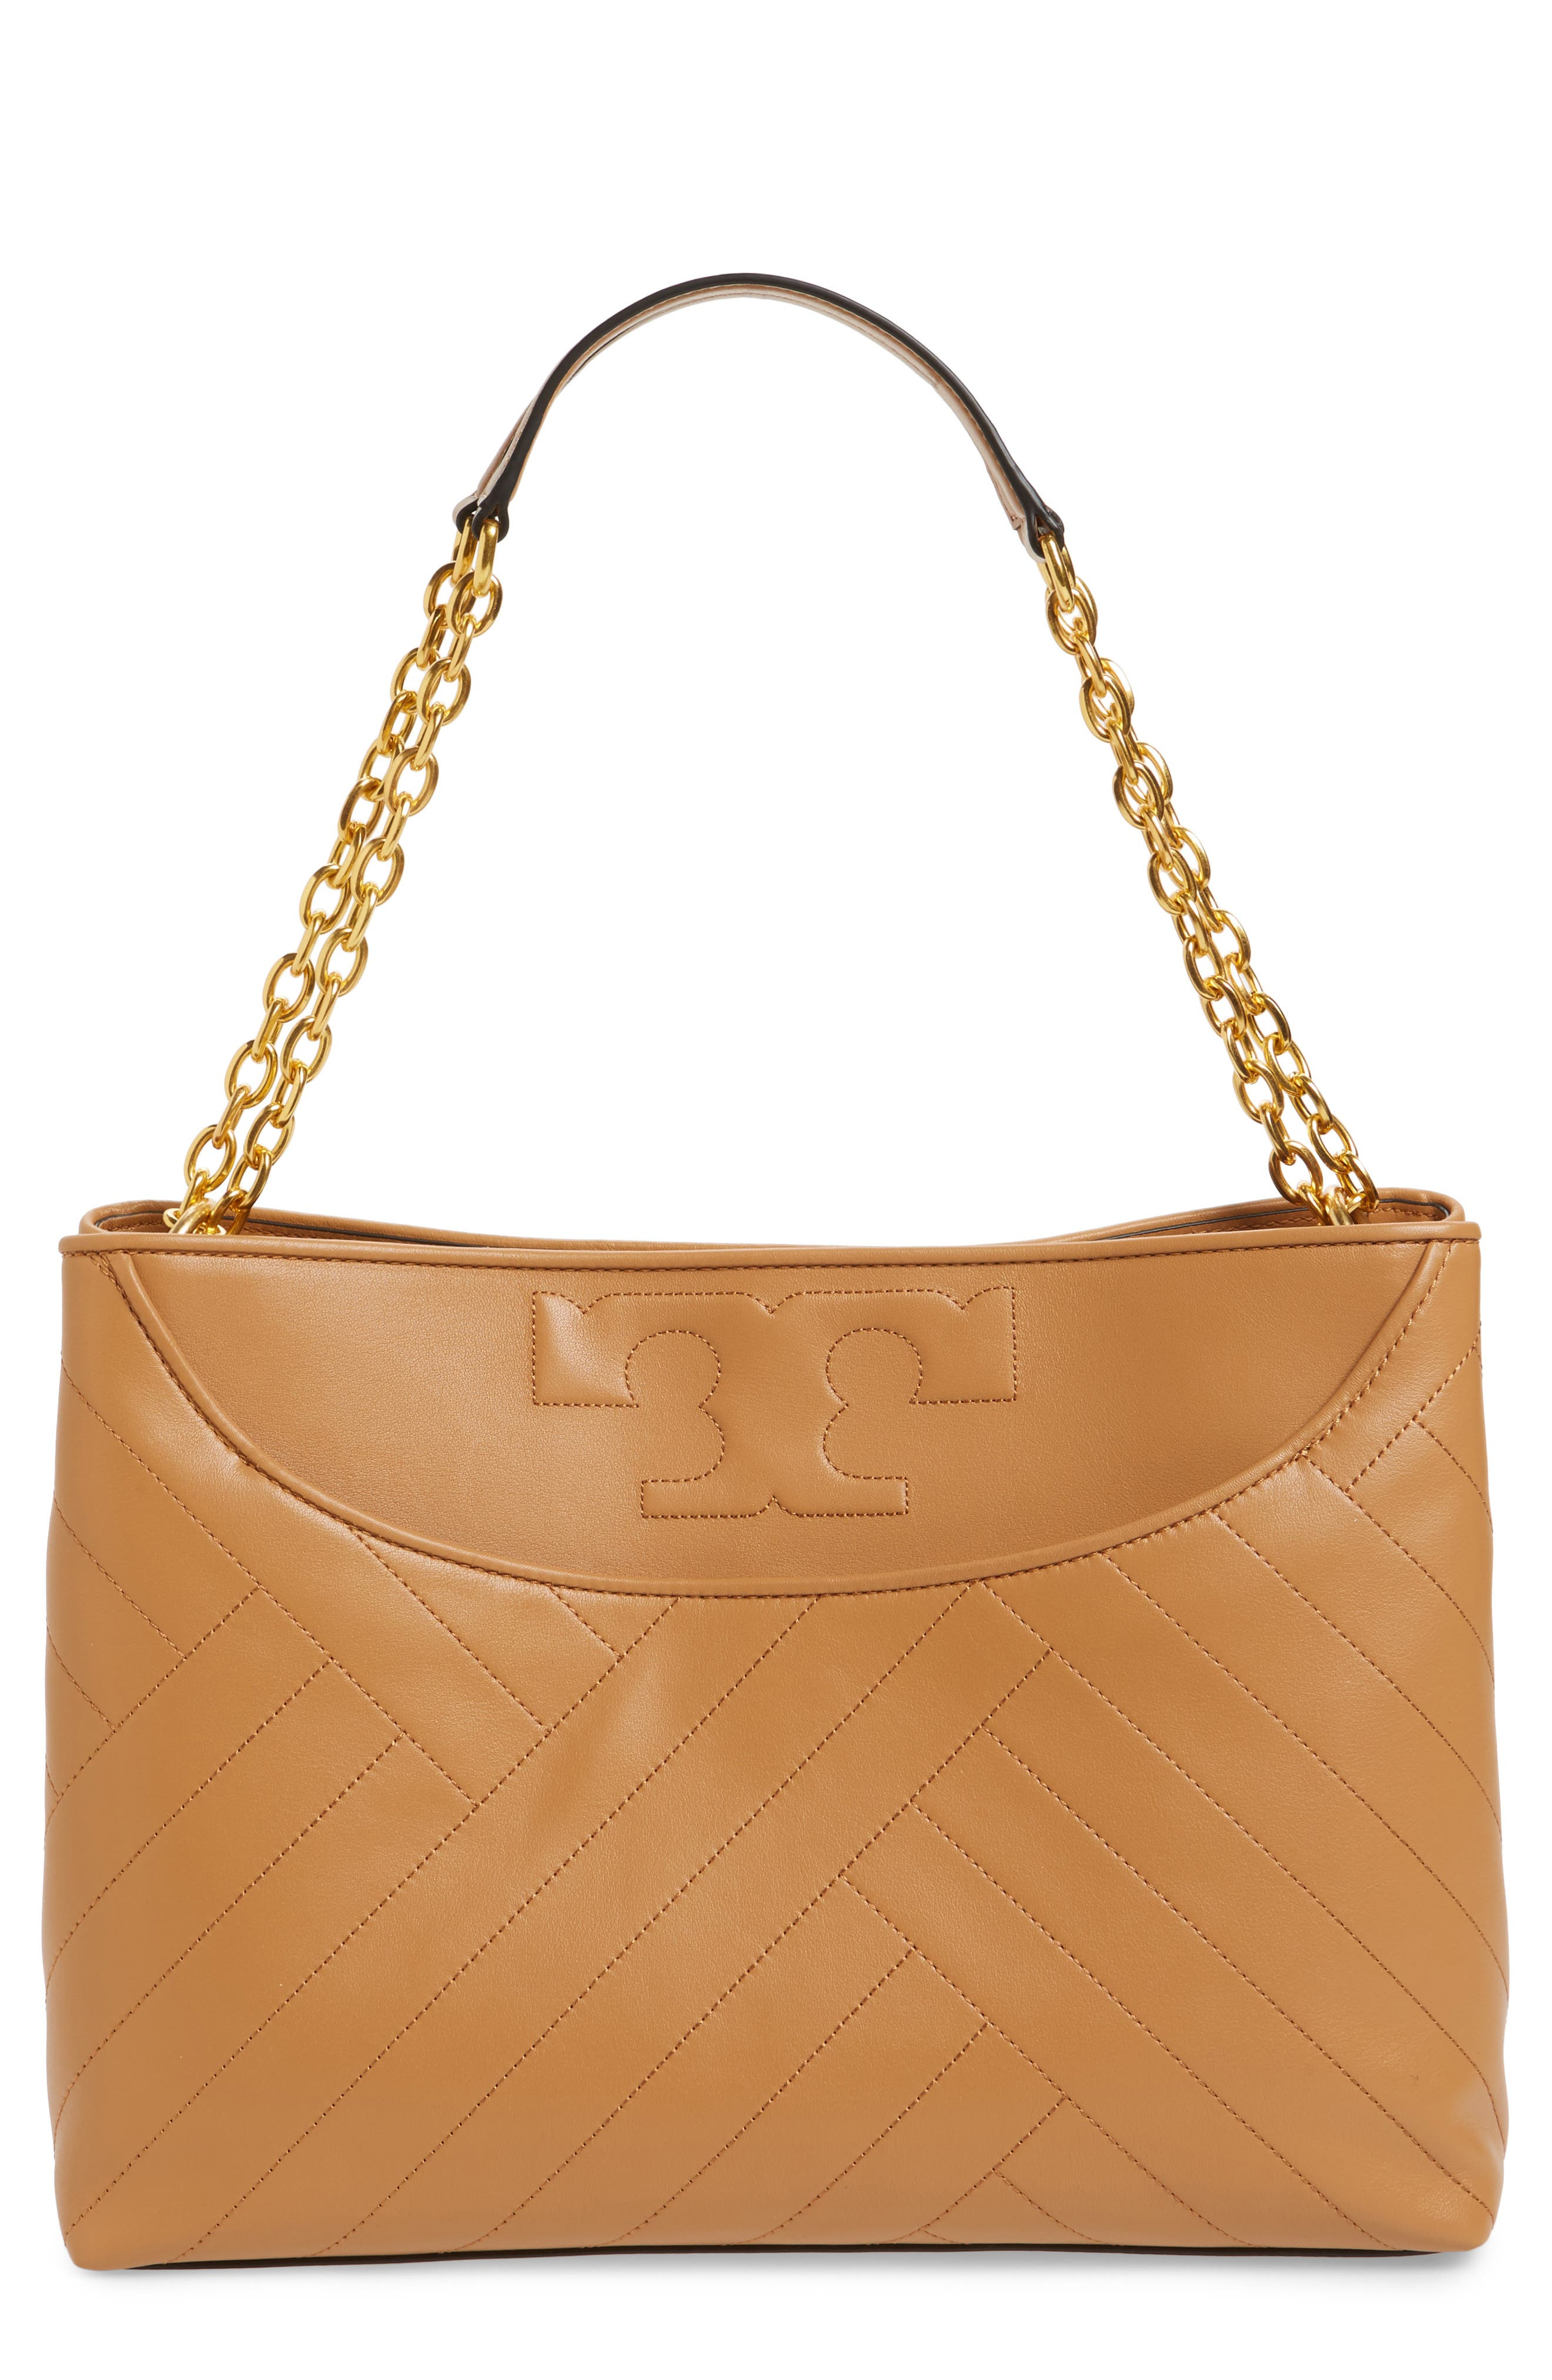 TORY BURCH Alexa Leather Tote, Main, color, 200